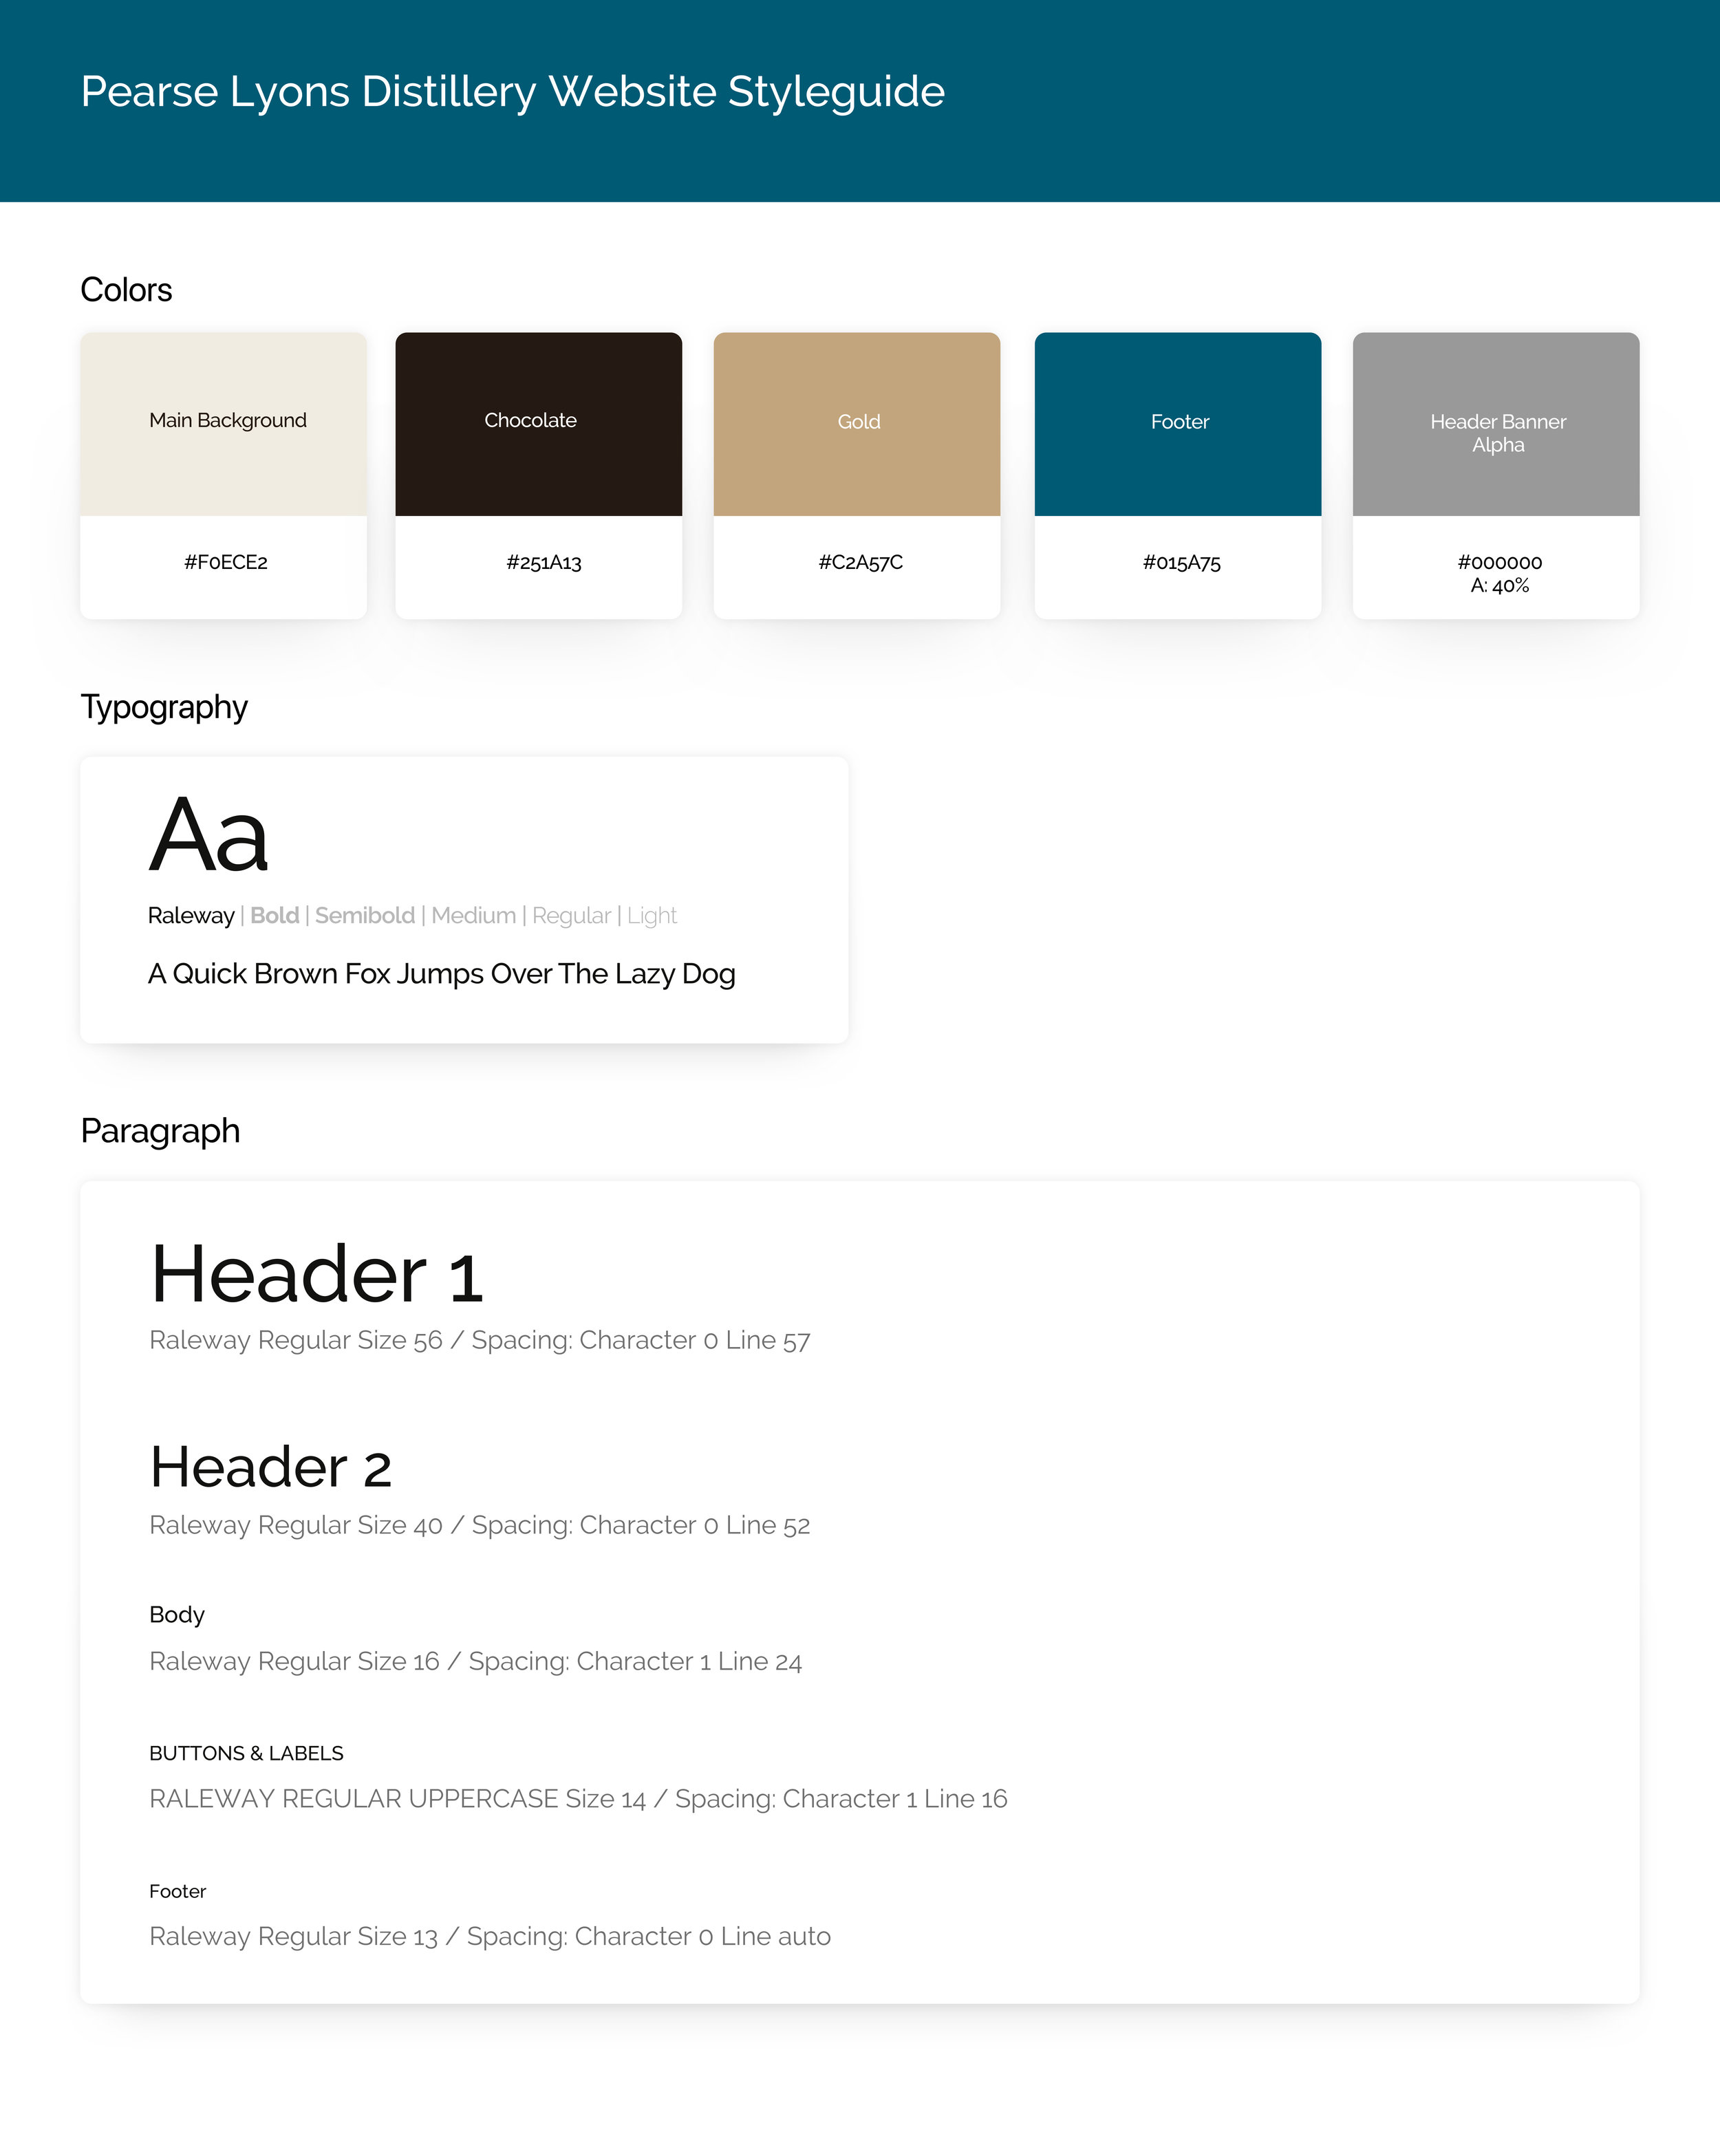 PLD Site Style Guide.jpg